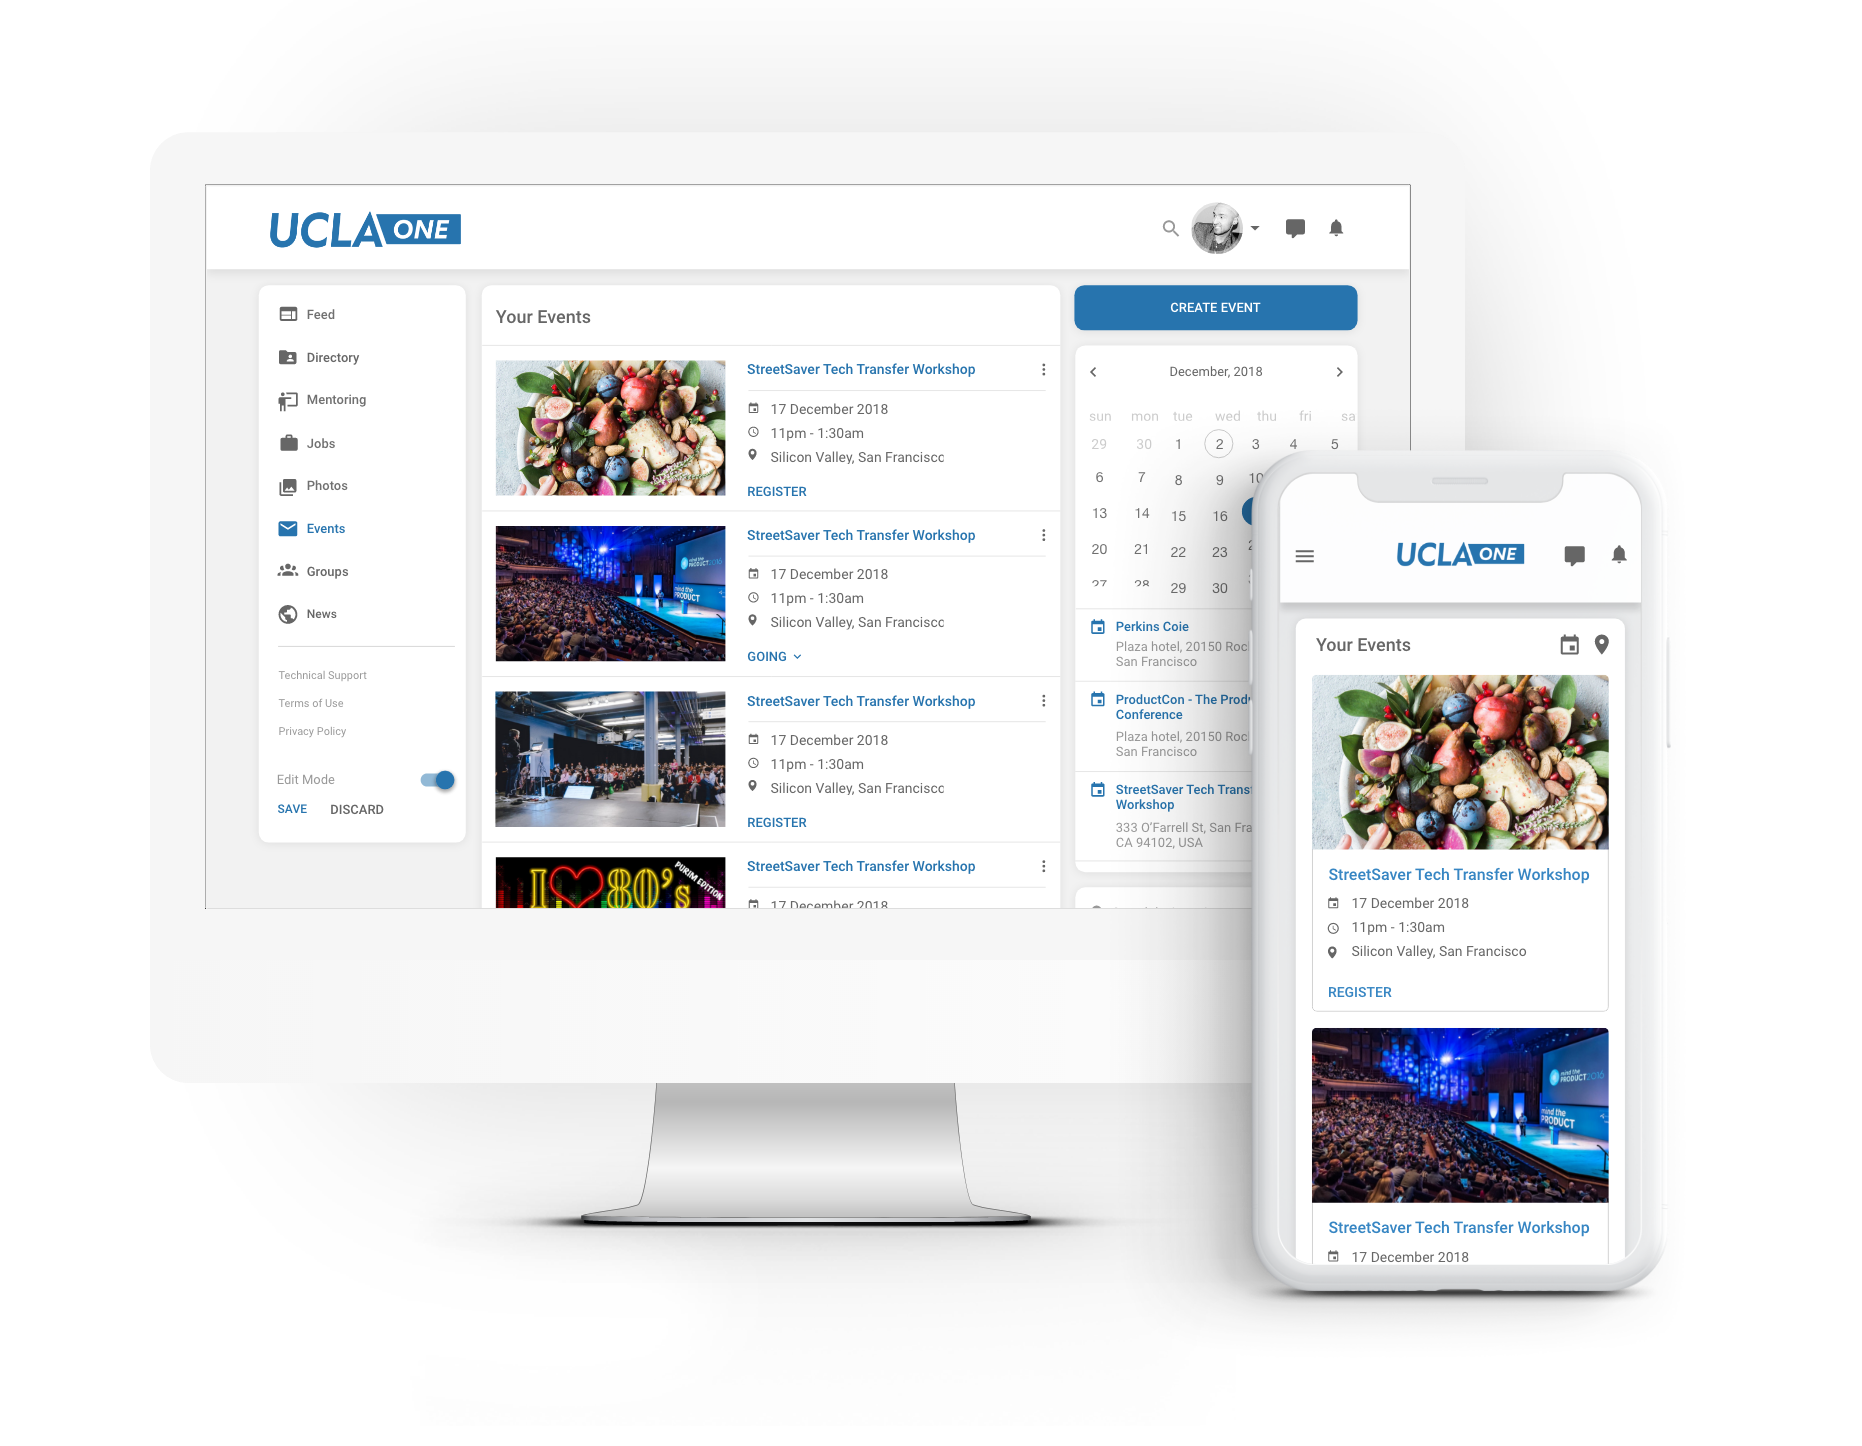 Fundraising event, annual gathering, networking luncheon - centralize all your event information in one, easy to access place. Our events module integrates with your 3rd party RSS feed to ensure your alumni don't miss a beat!